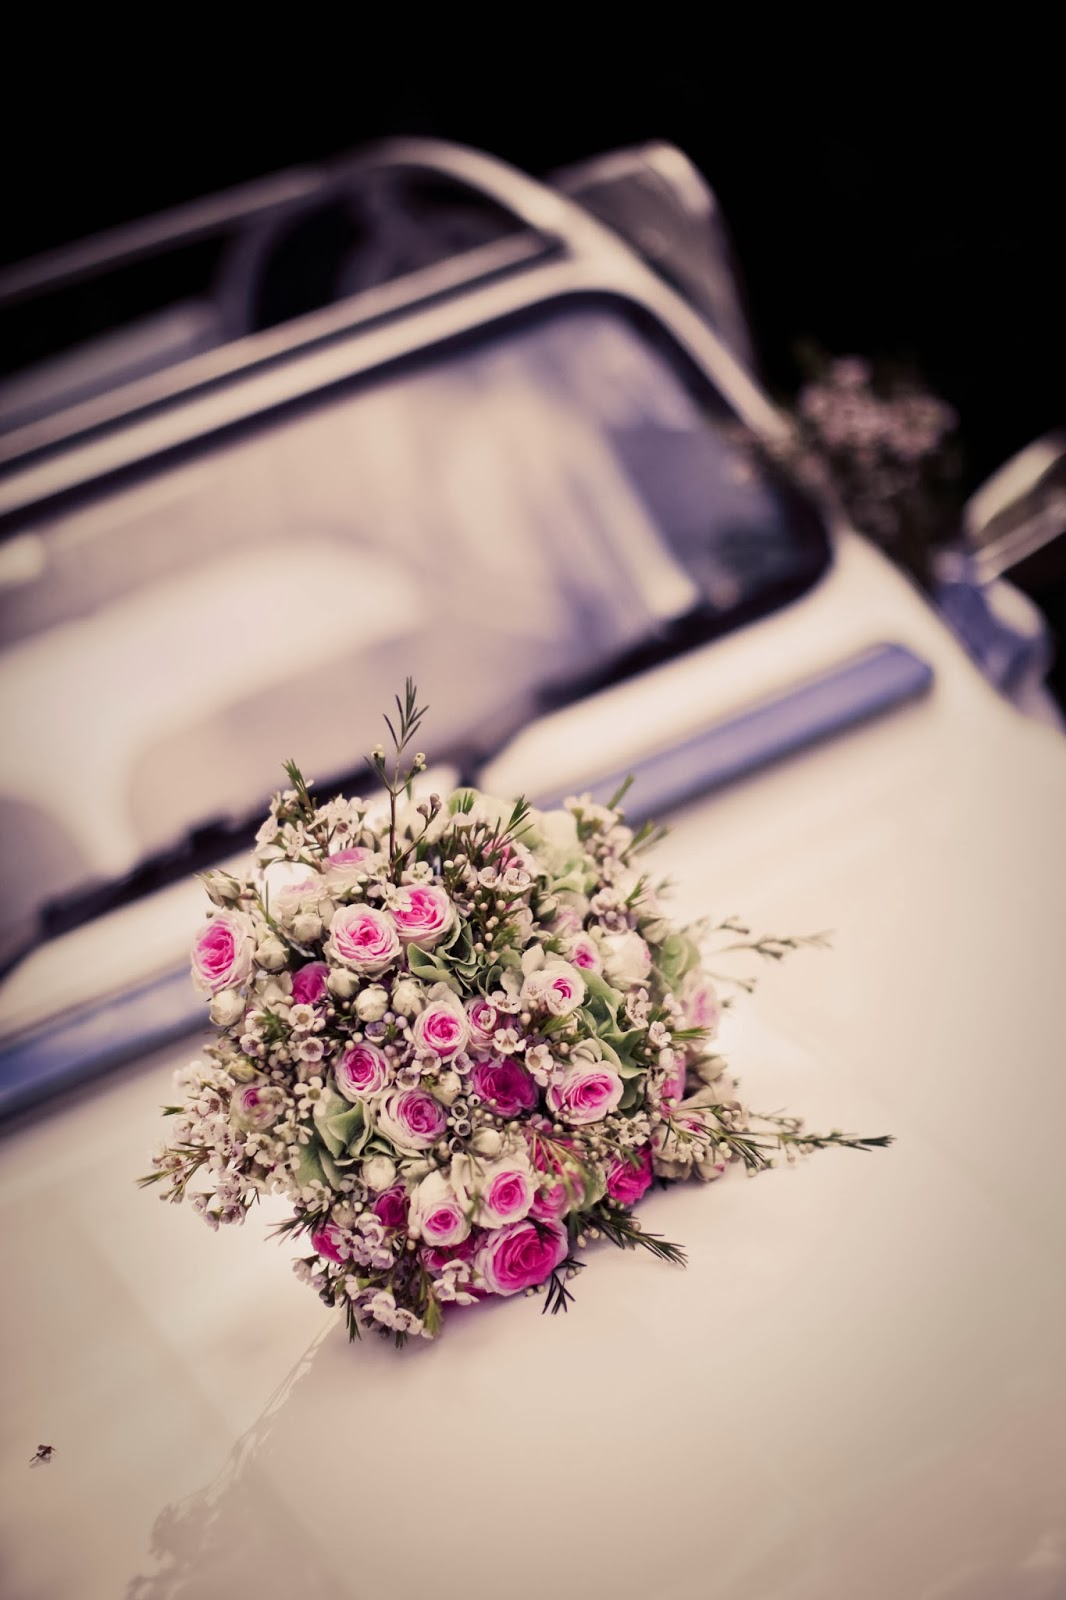 Retro roses bride bouquet on vintage French wedding car-Wedding photography by Elisabeth Perotin